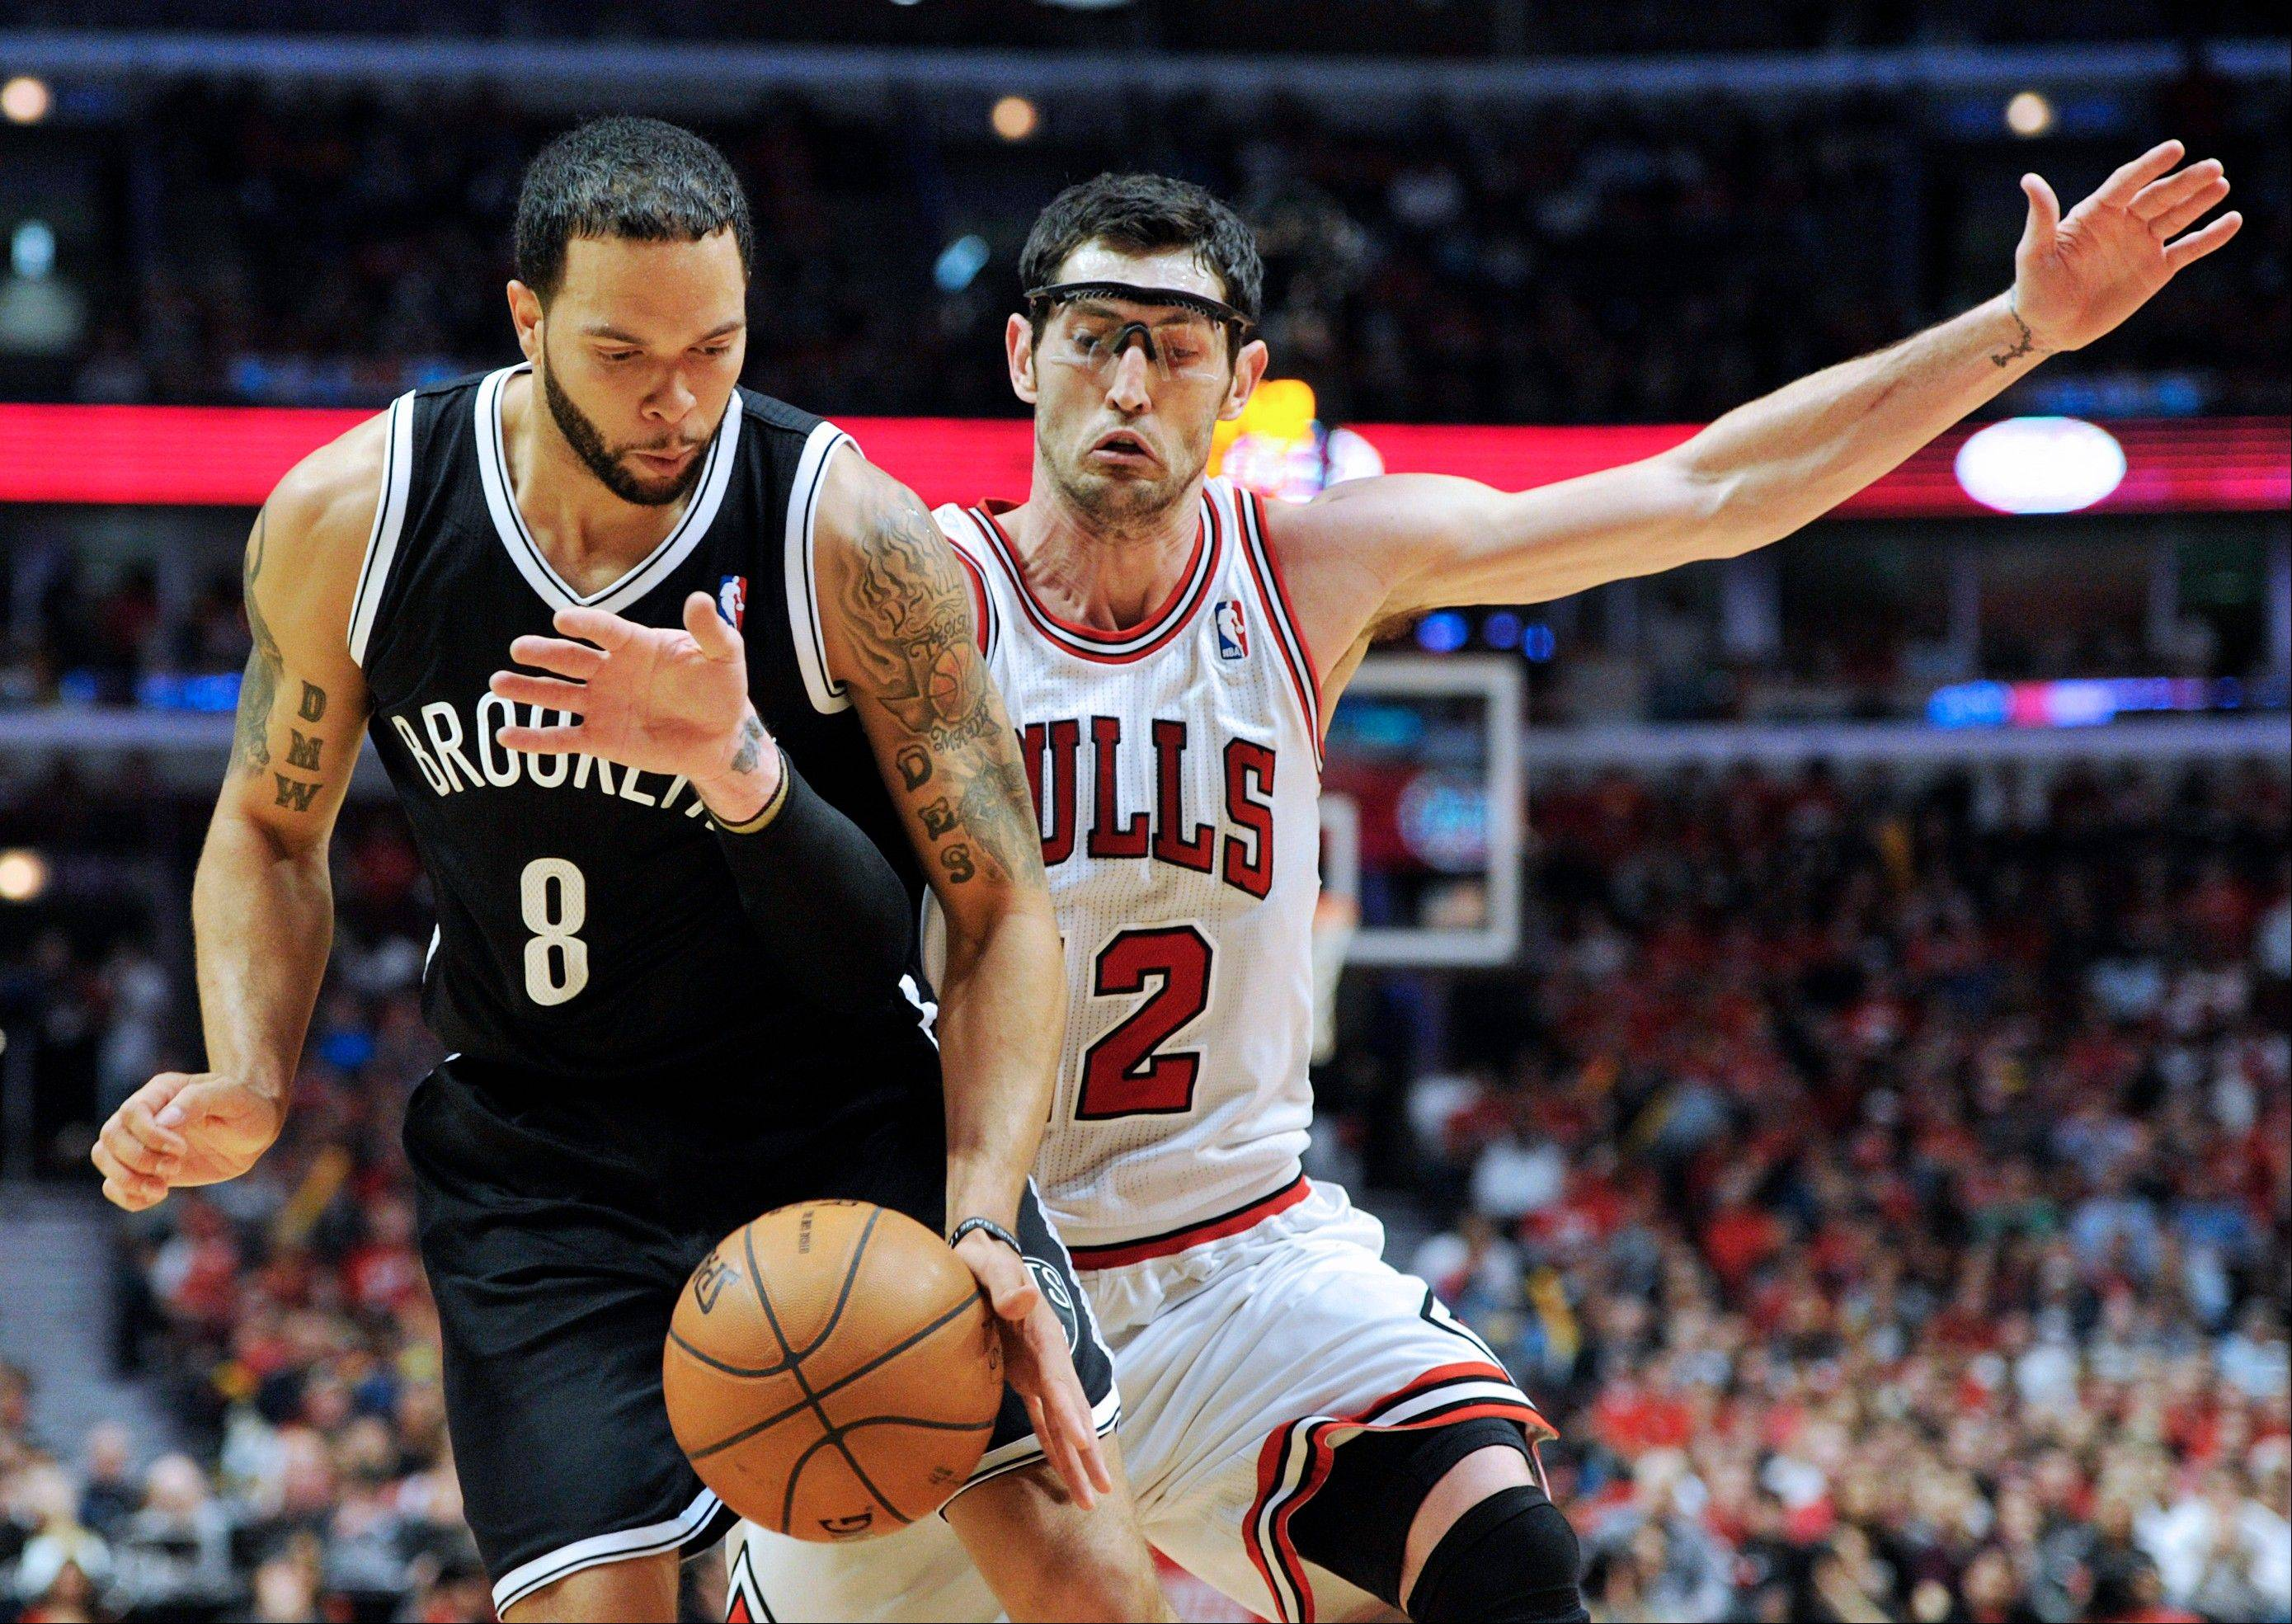 Kirk Hinrich, who played nearly 60 minutes of the Bulls' 142-134 victory over the Nets in triple overtime at the United Center on Saturday, spent much of the game shadowing Deron Williams wherever he went.